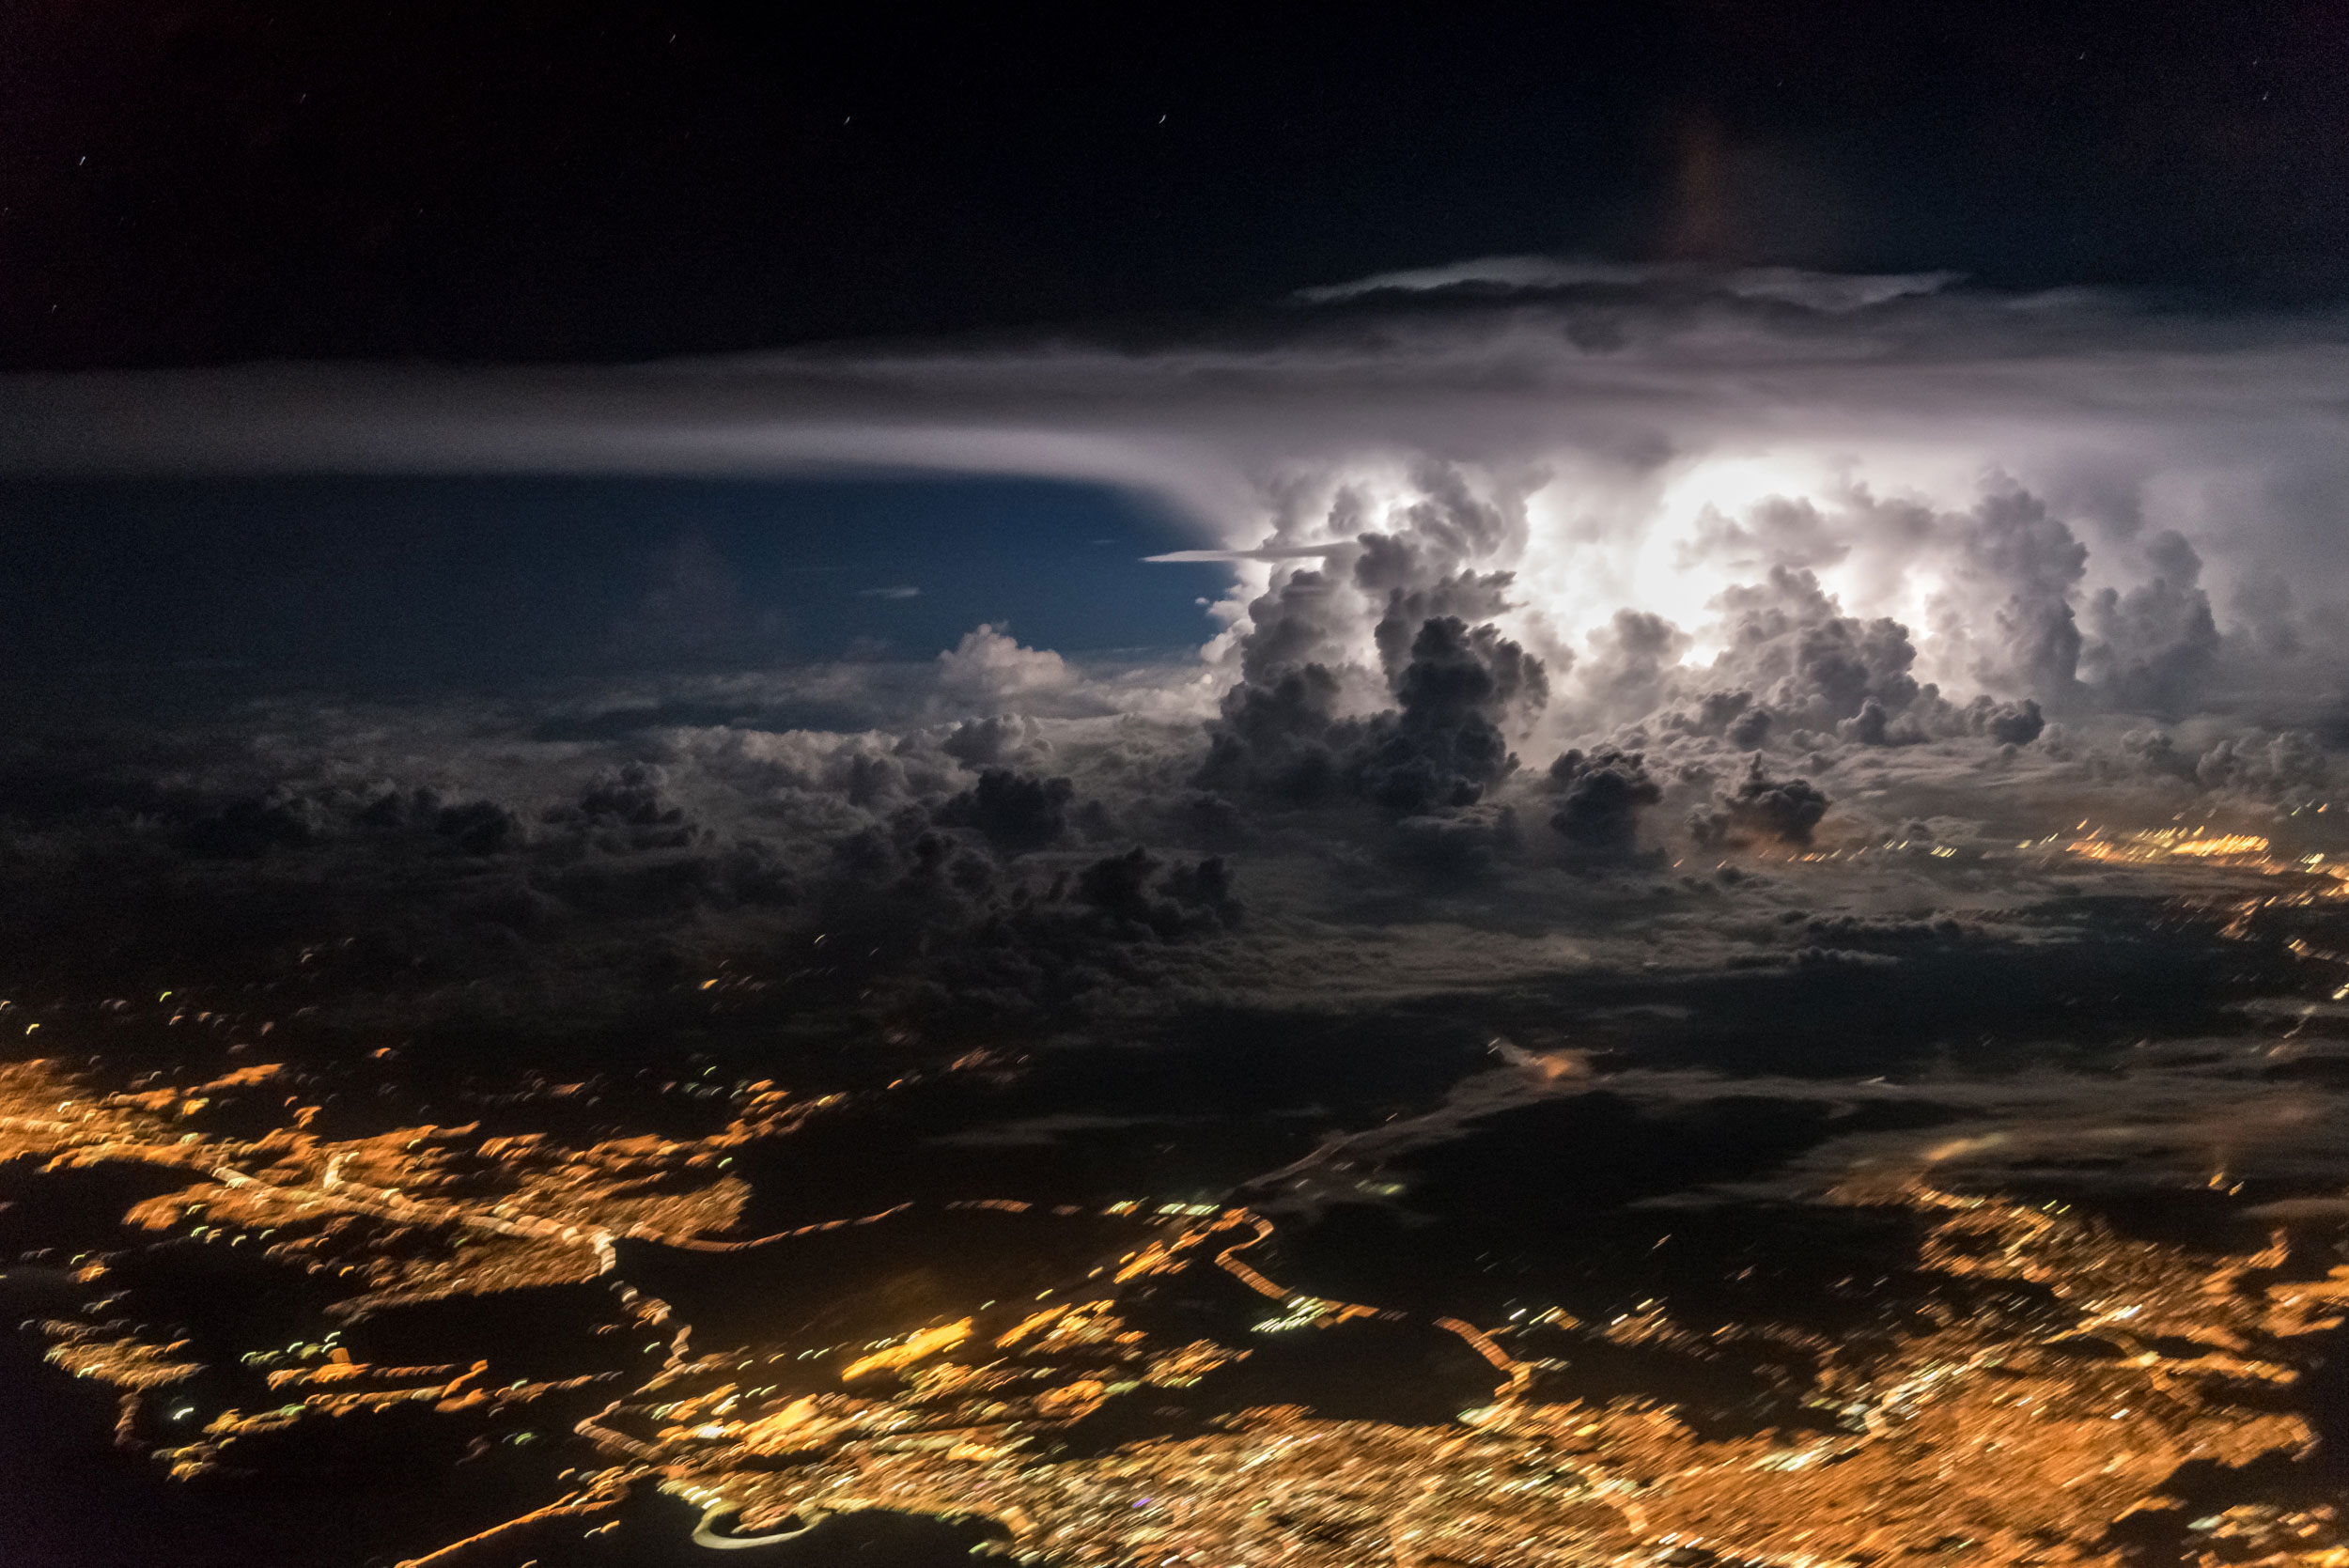 A strong supercell is flashing near the coast of Panama City where both Pacific and Atlantic oceans meet and create the perfect scenario for storms.